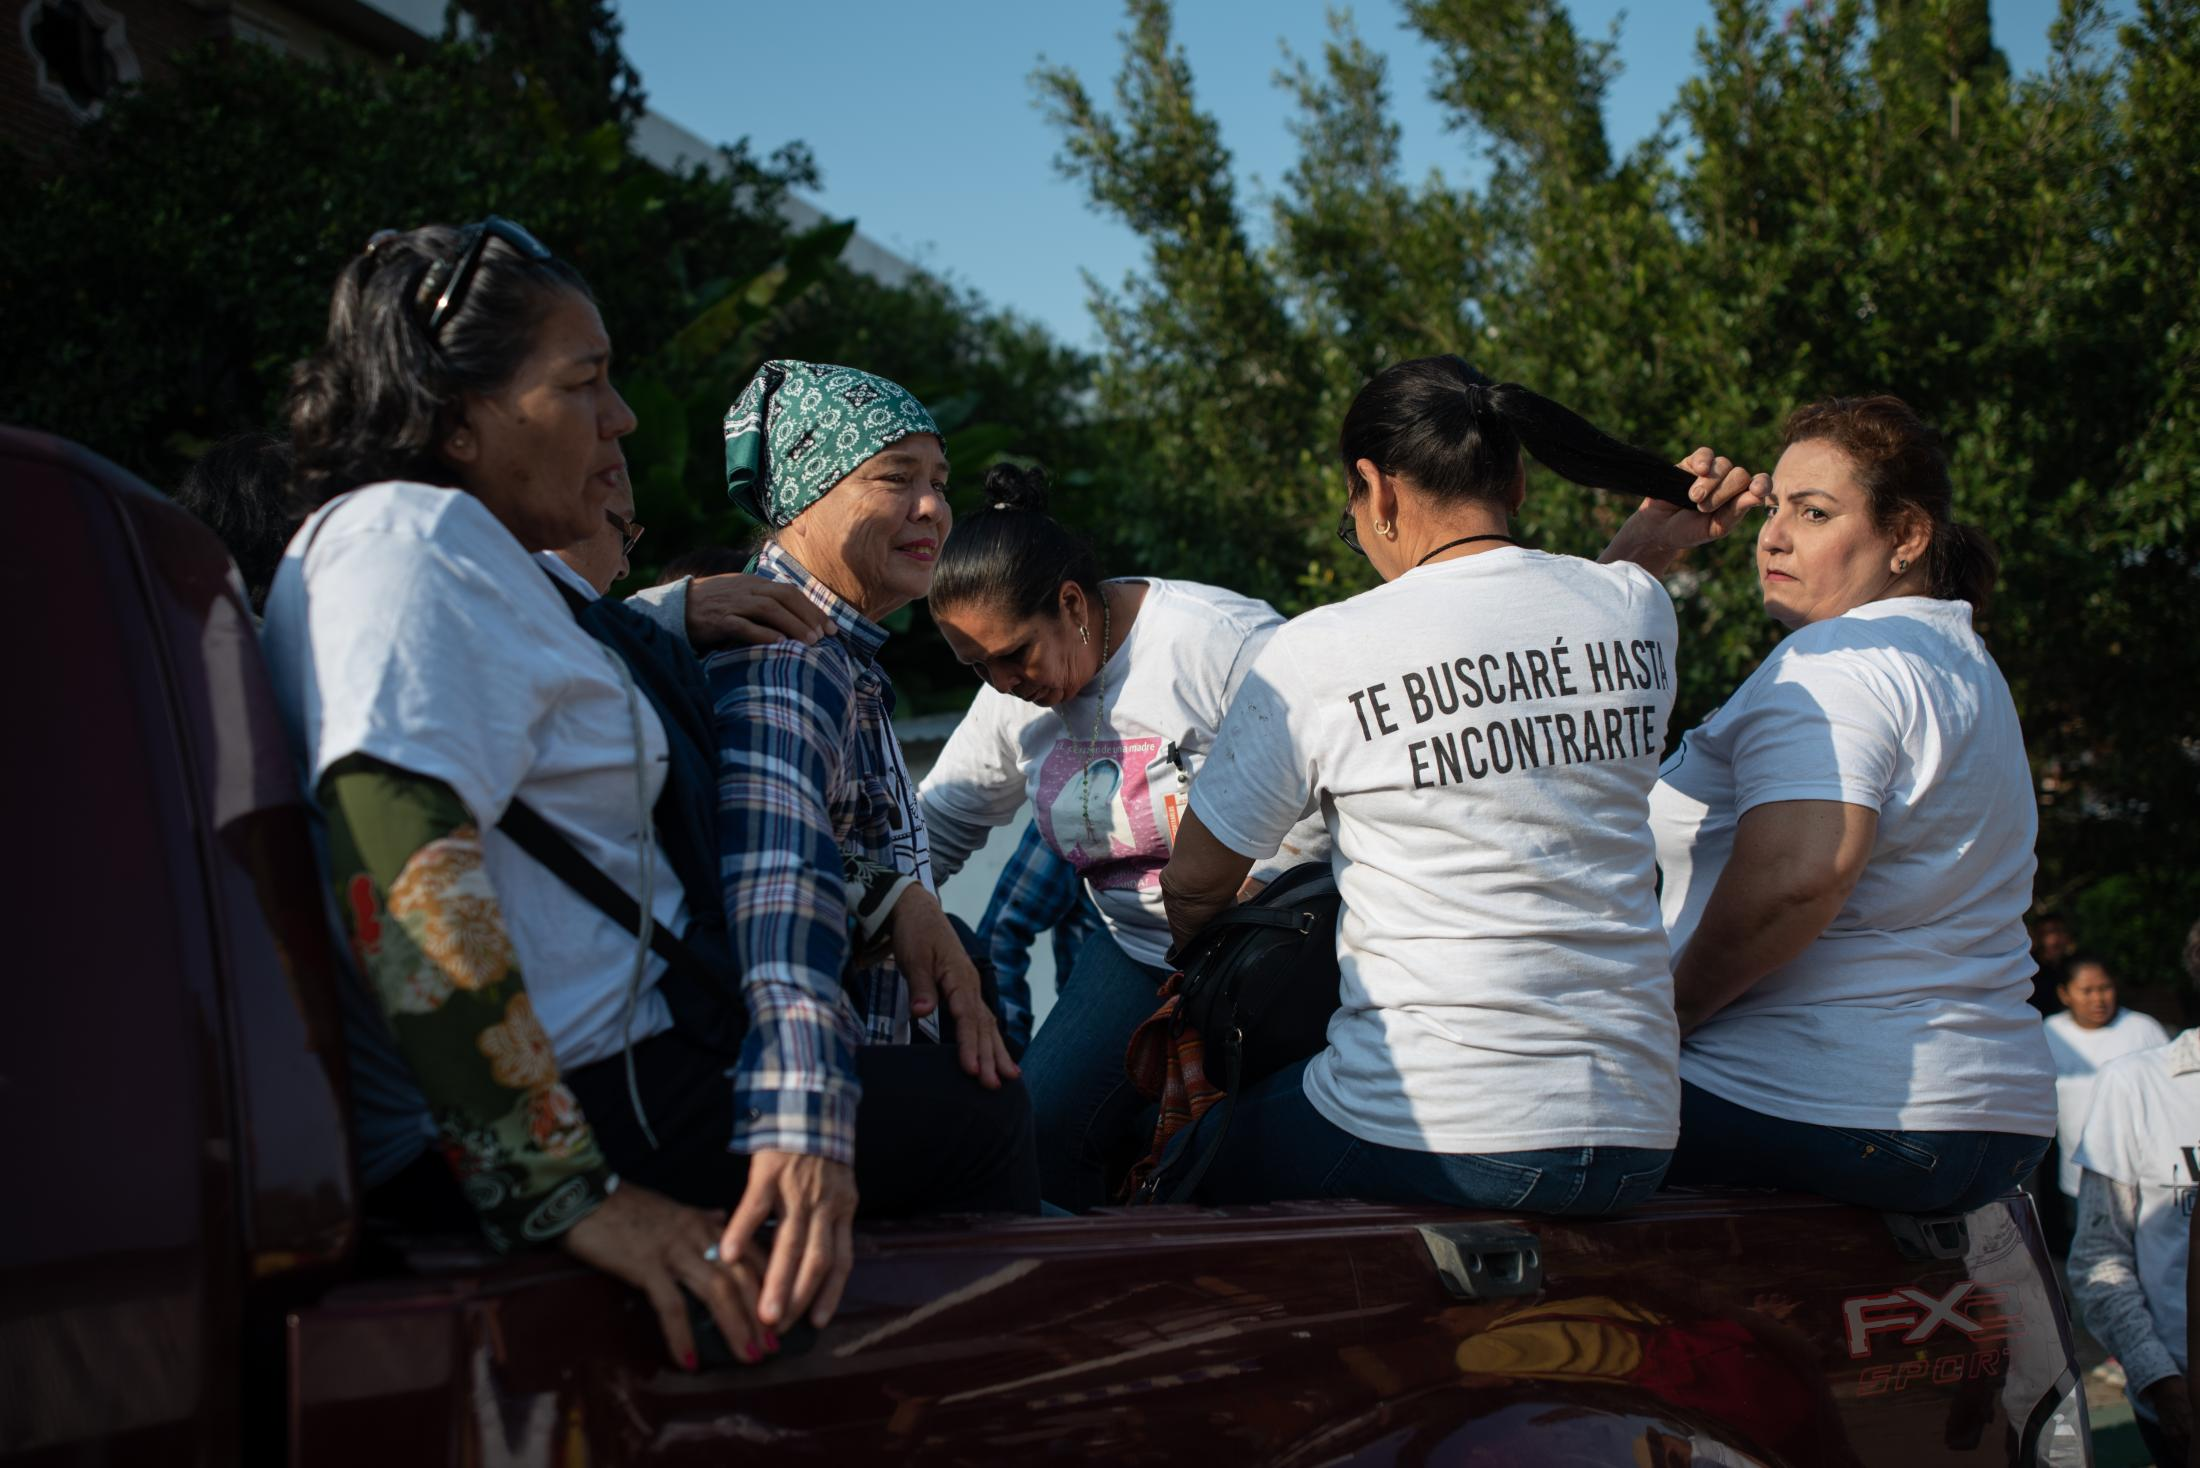 """The seekers collective """"Las Rastreadoras del Fuerte"""" from Sinaloa, Mexico, board a pickup truck inside the Casa de la Iglesia center, where they housed about 300 people associated with social groups who participated in the fifth National Missing Persons Search Brigade, on February 20, 2020 in Papantla, Veracruz, Mexico, on February 20, 2020. Victoria Razo for NPR"""